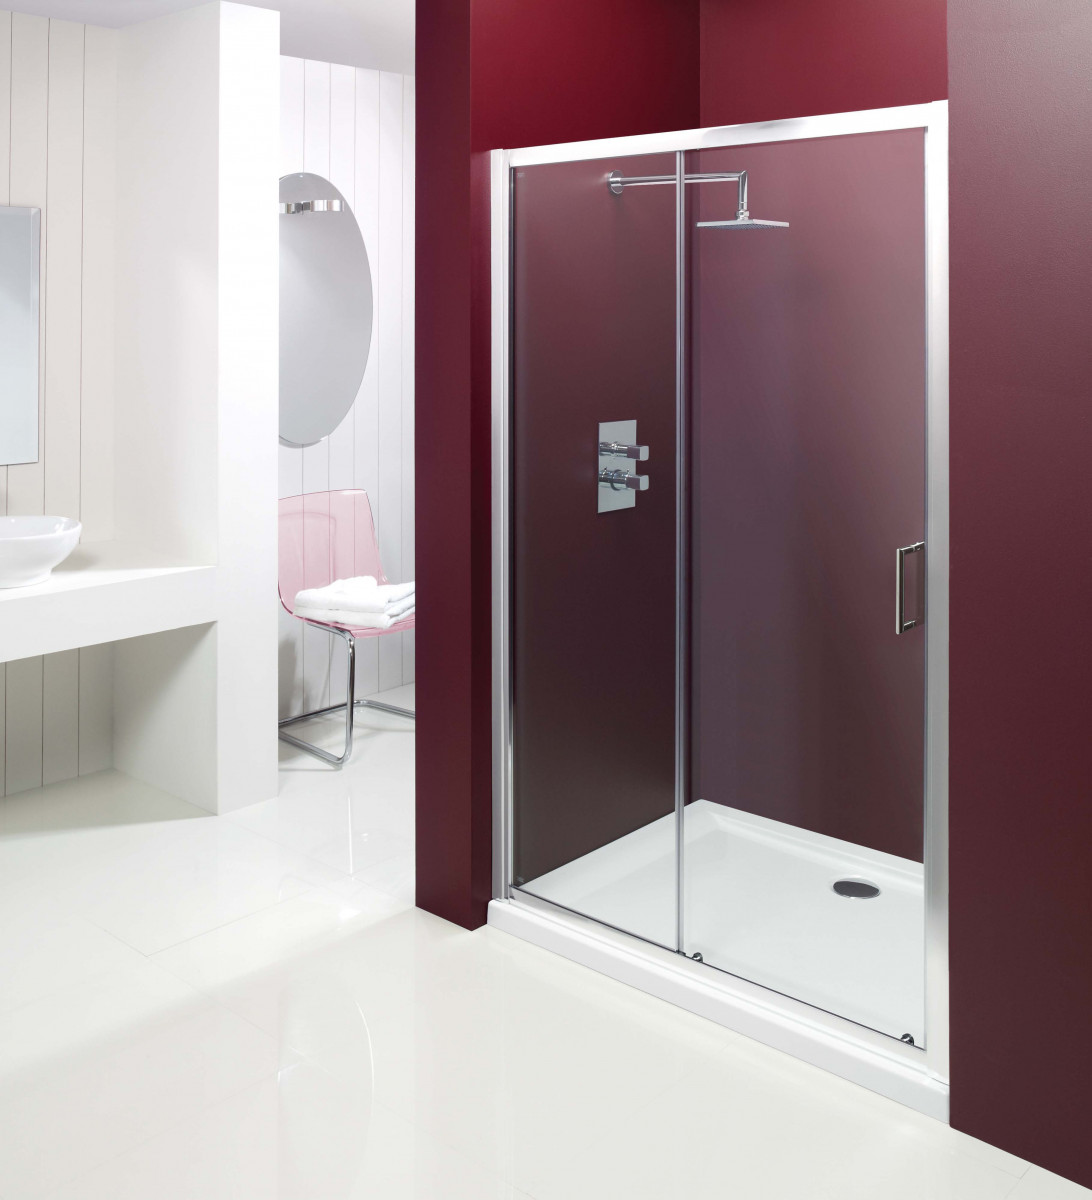 Merlyn vivid entree 1200mm sliding shower door for 1200mm shower door sliding